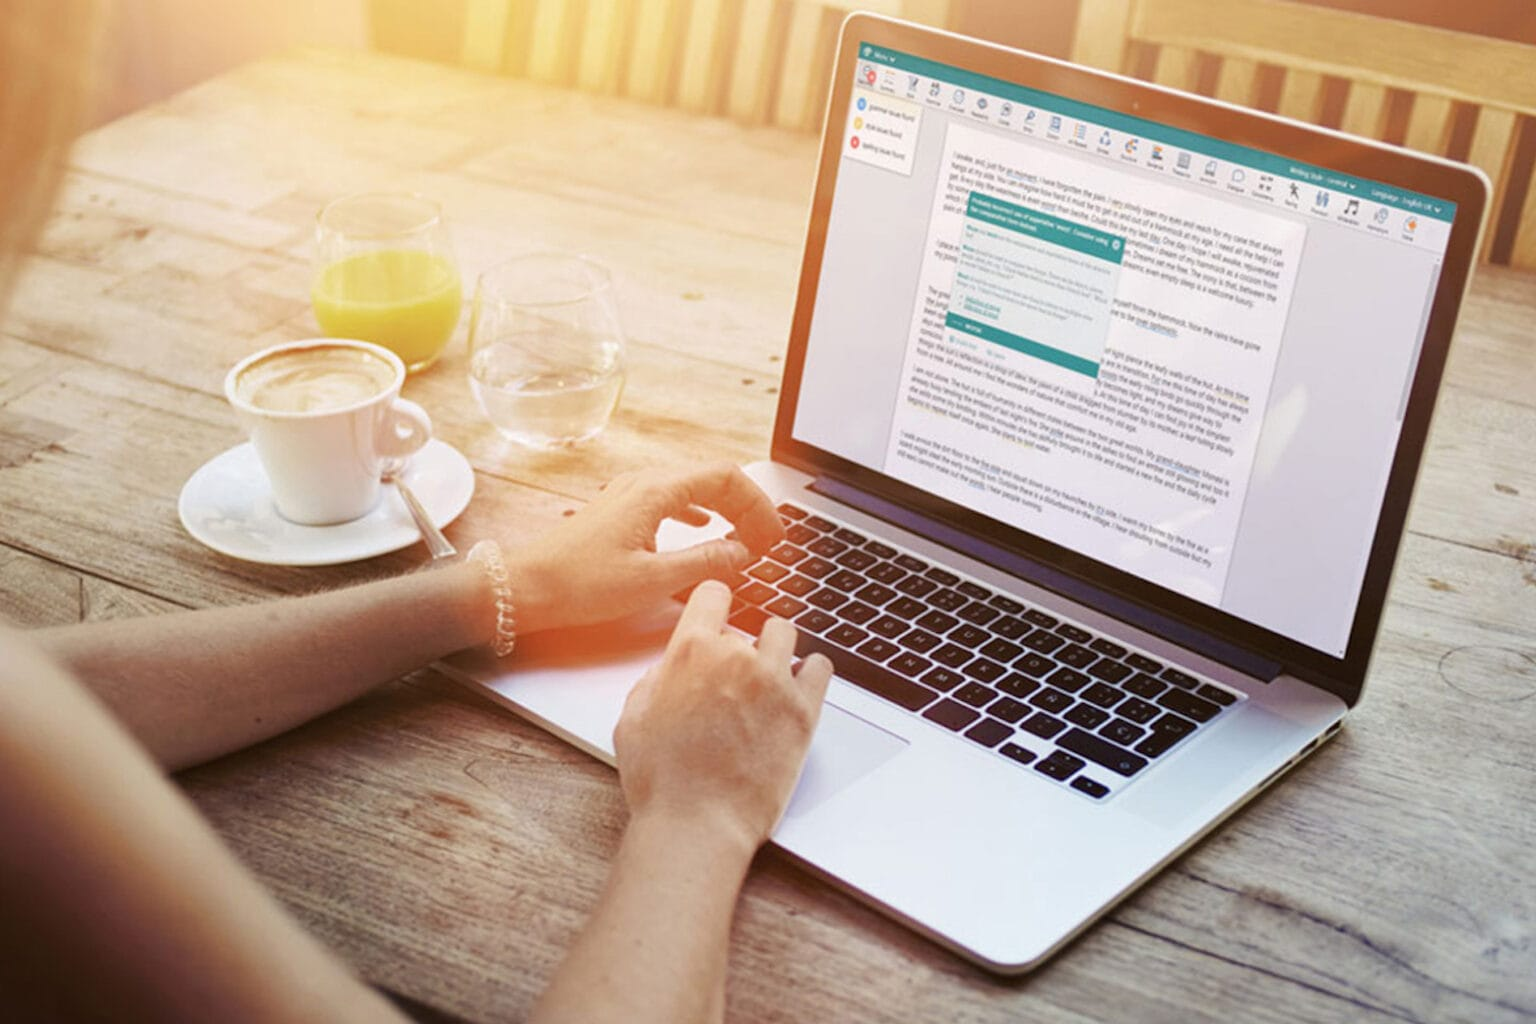 Get support, information, and software designed for writers.